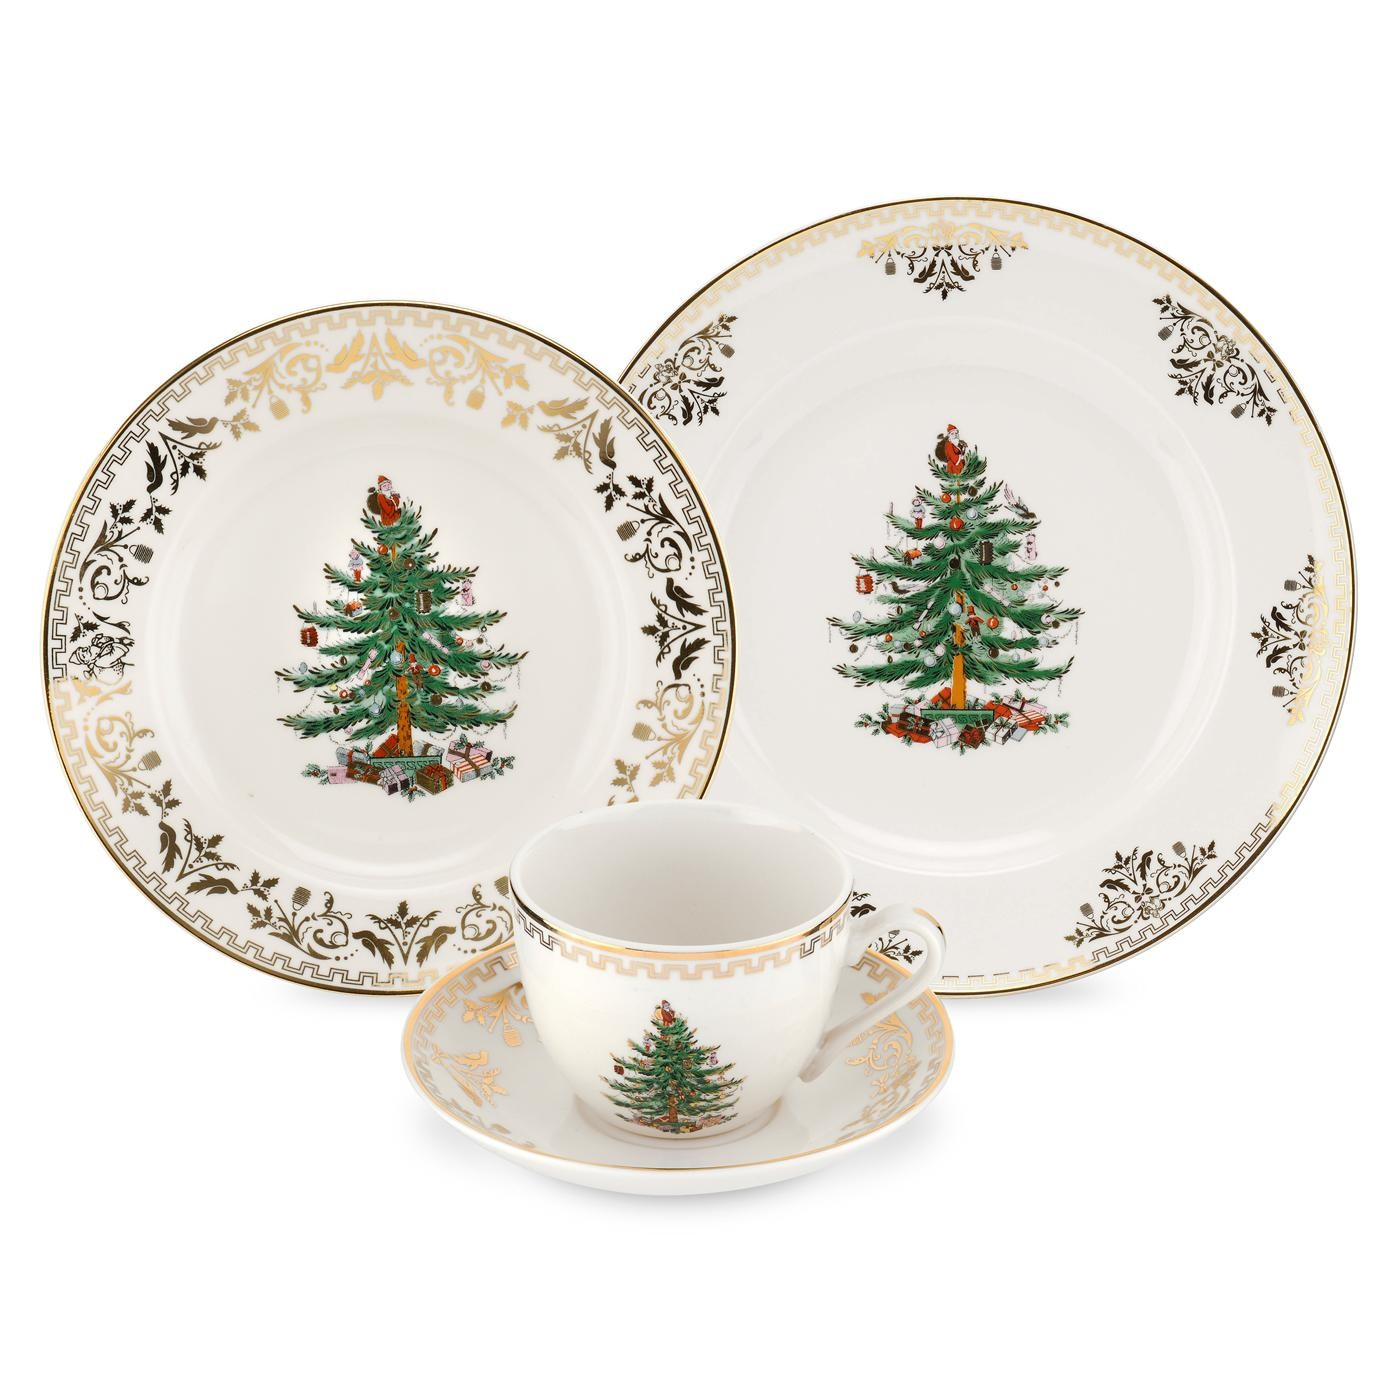 spode-christmas-tree-gold-4-pc-place-setting-1557093.jpg